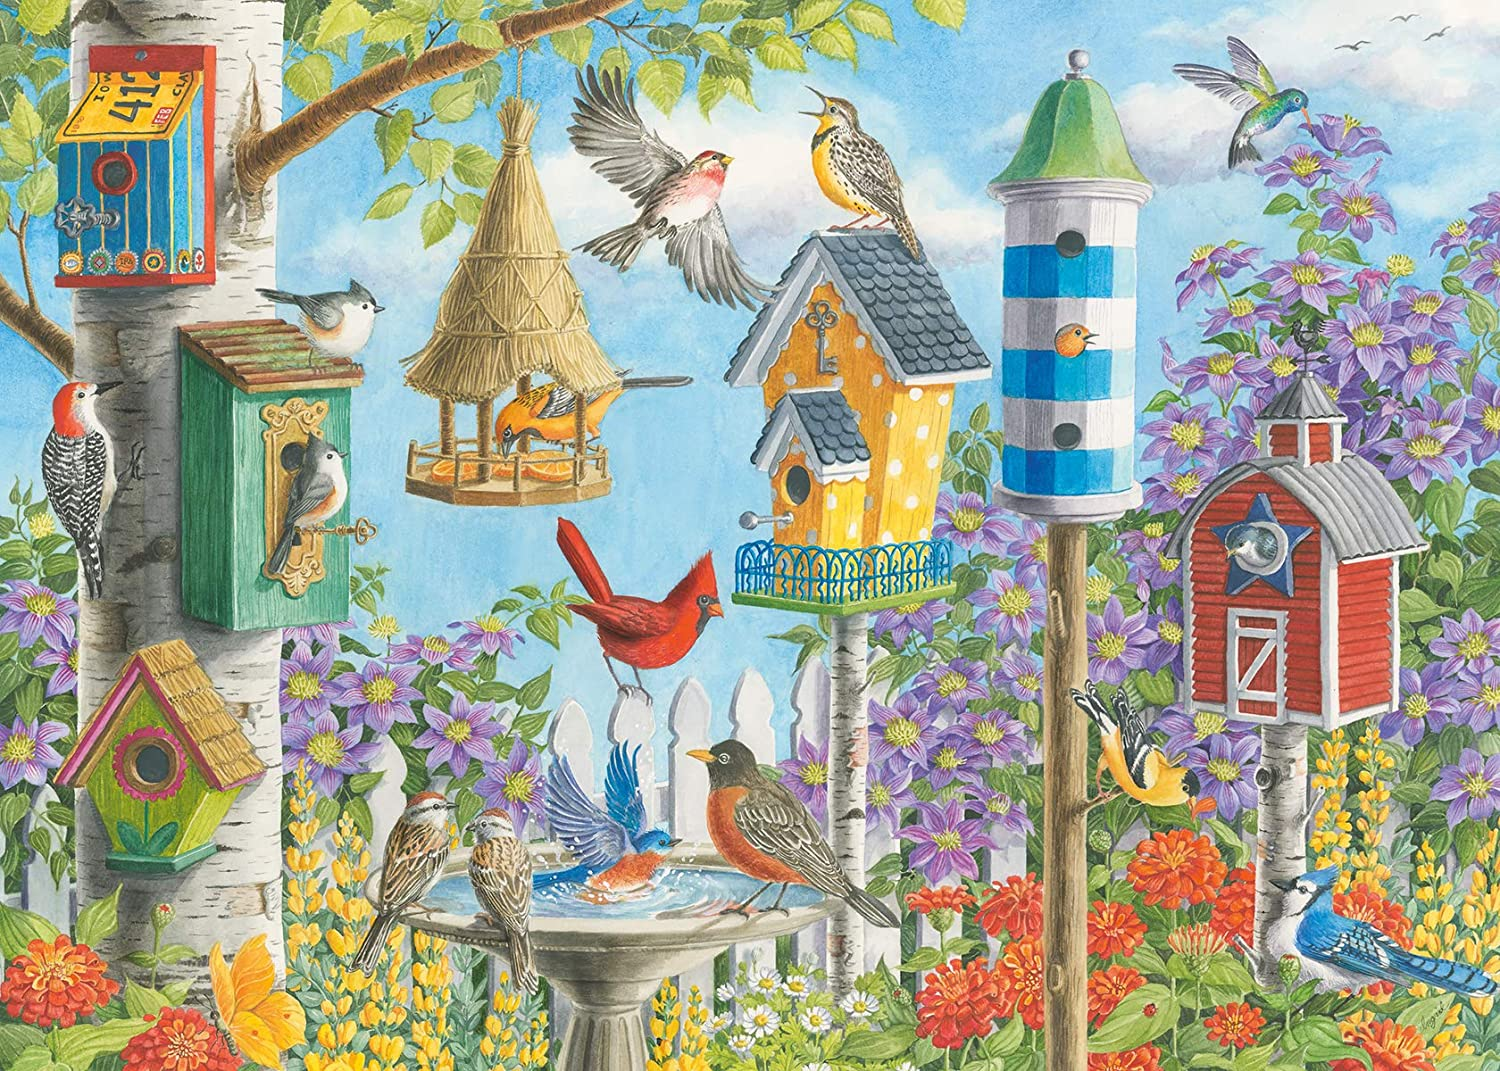 Ravensburger 16436 Home Tweet Home 300 Piece Large Pieces Jigsaw Puzzle for Adults - Every Piece is Unique, Softclick Technology Means Pieces Fit Together Perfectly